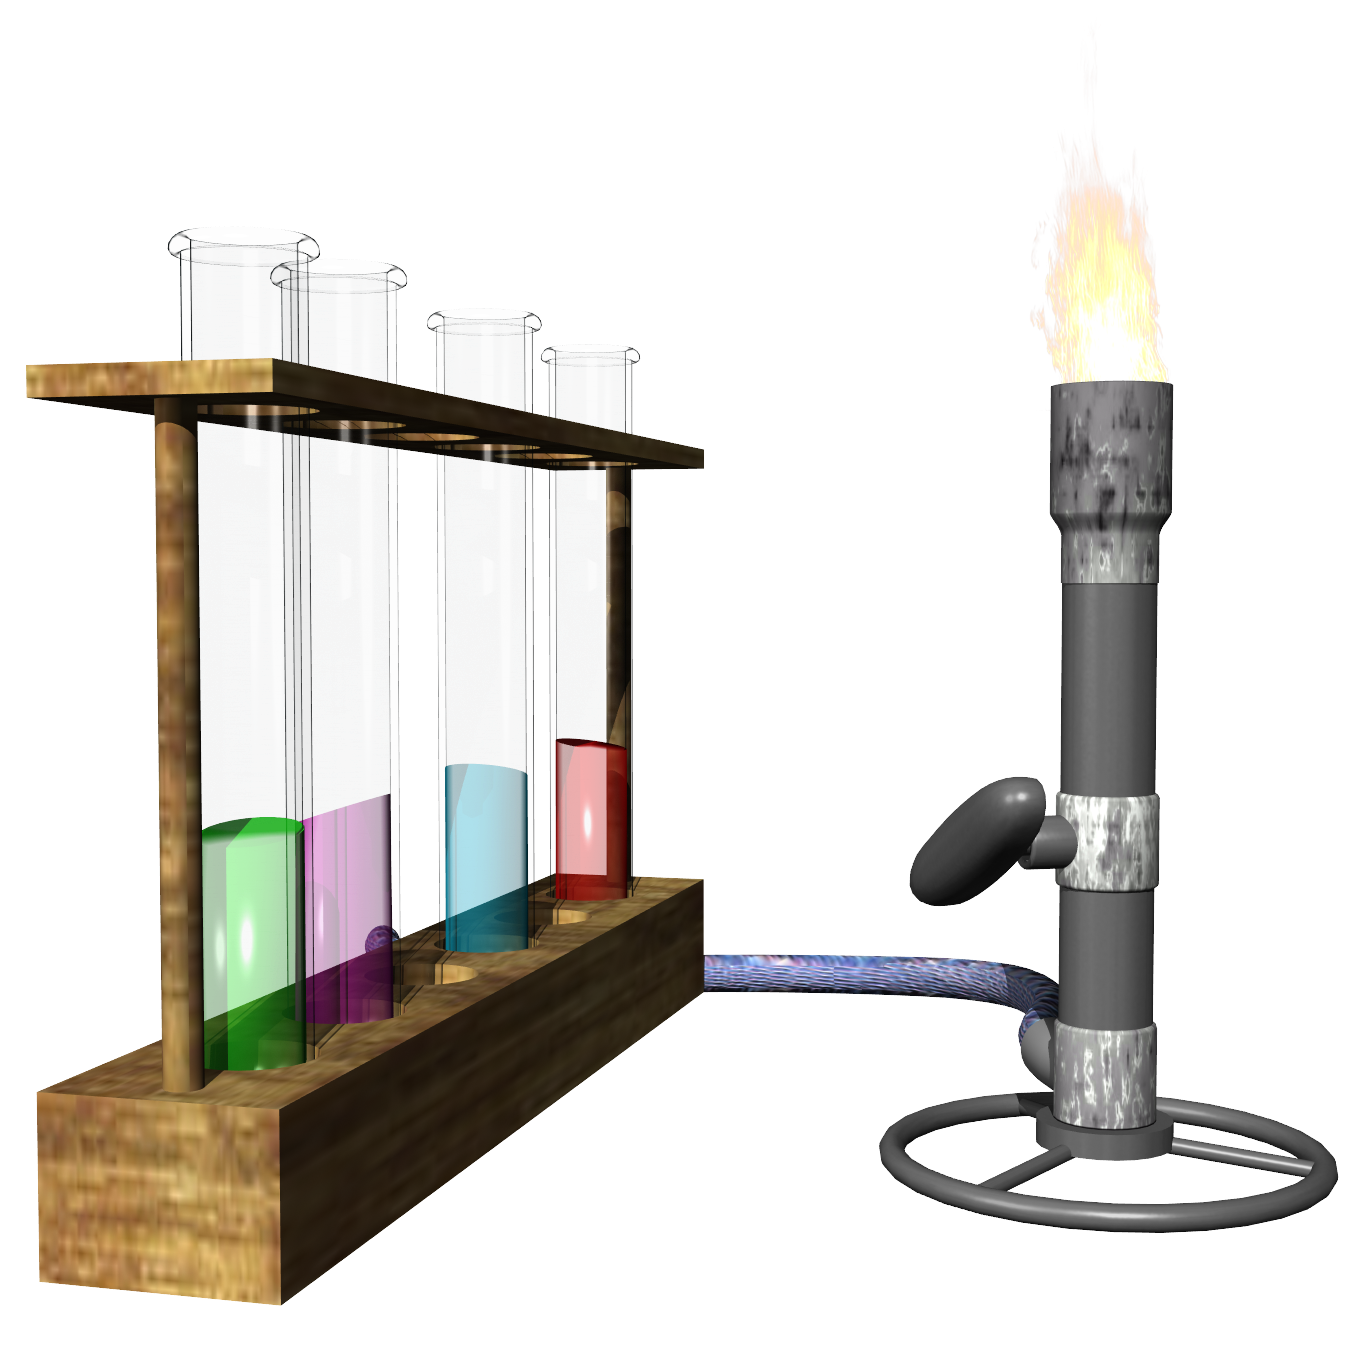 How do you find answers to the flame test Lab?